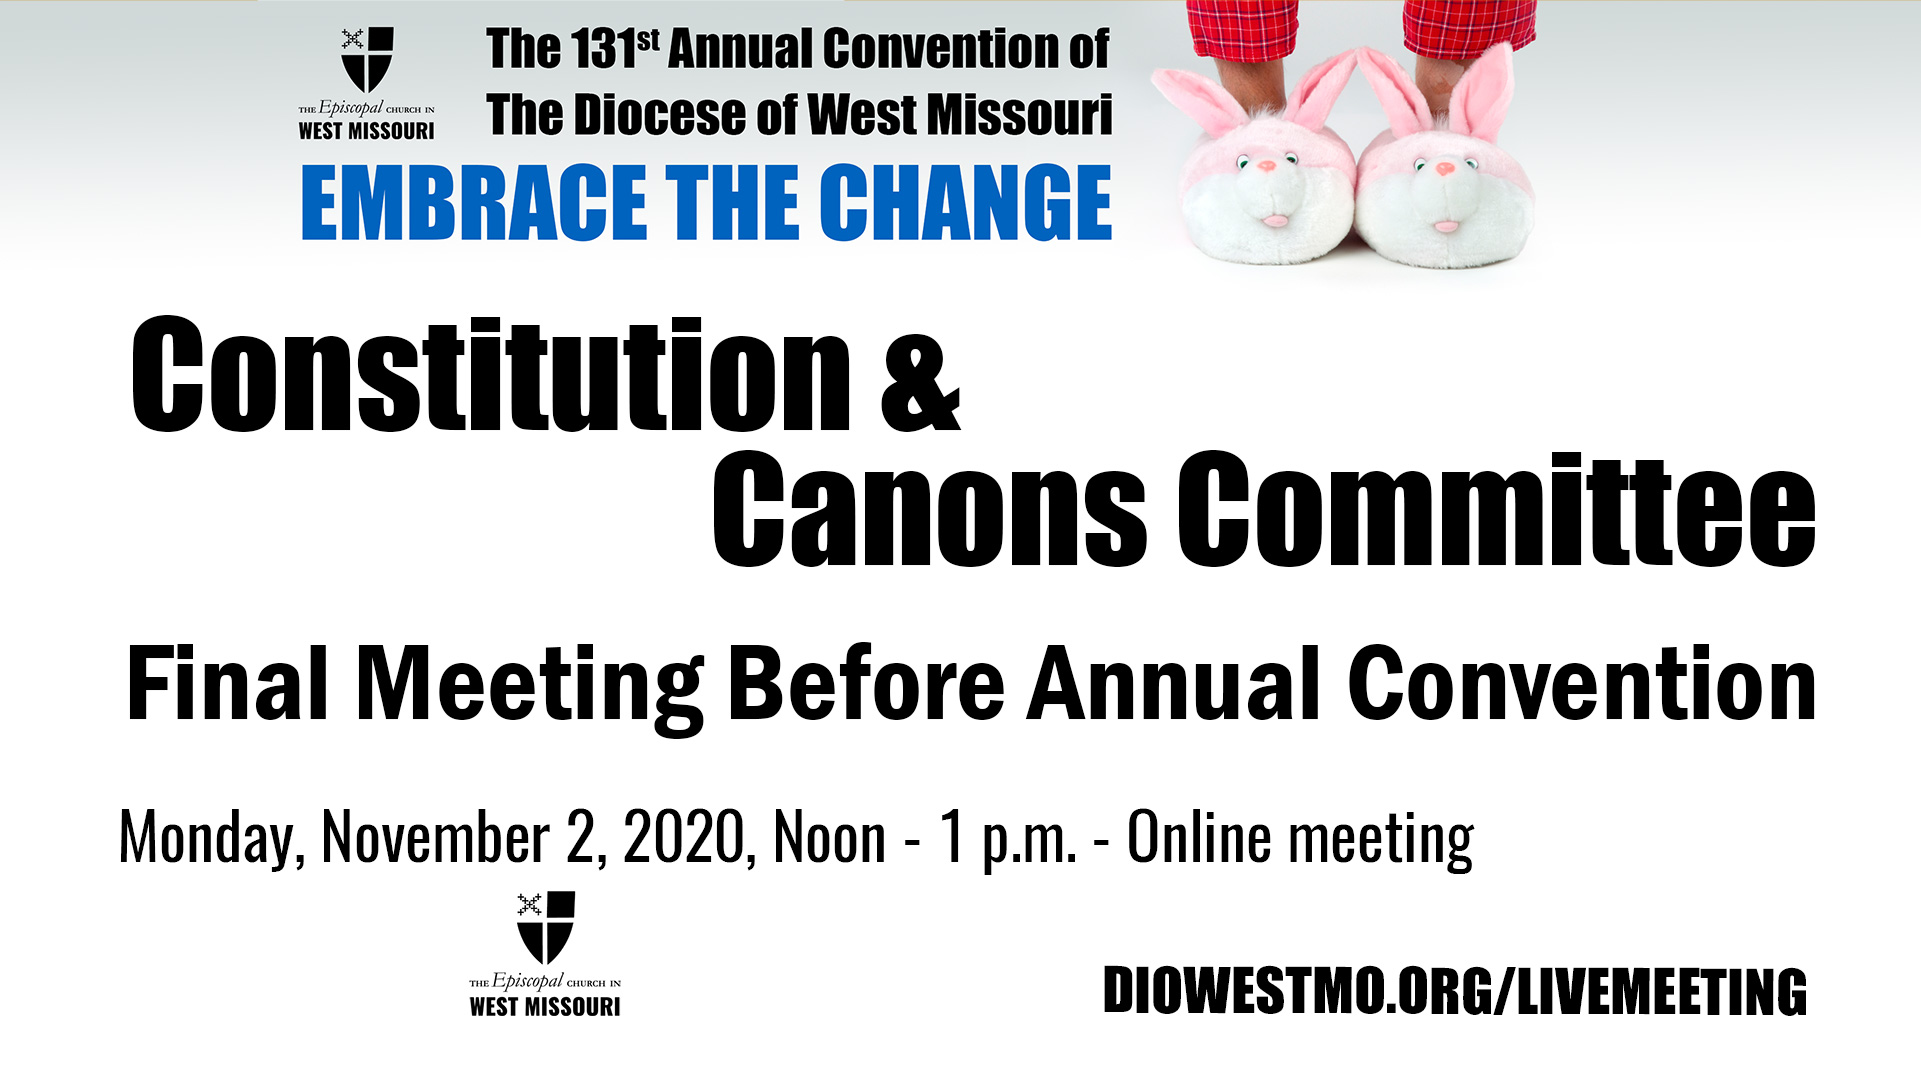 Constitution & Canons Committee – Final Meeting Before Annual Convention